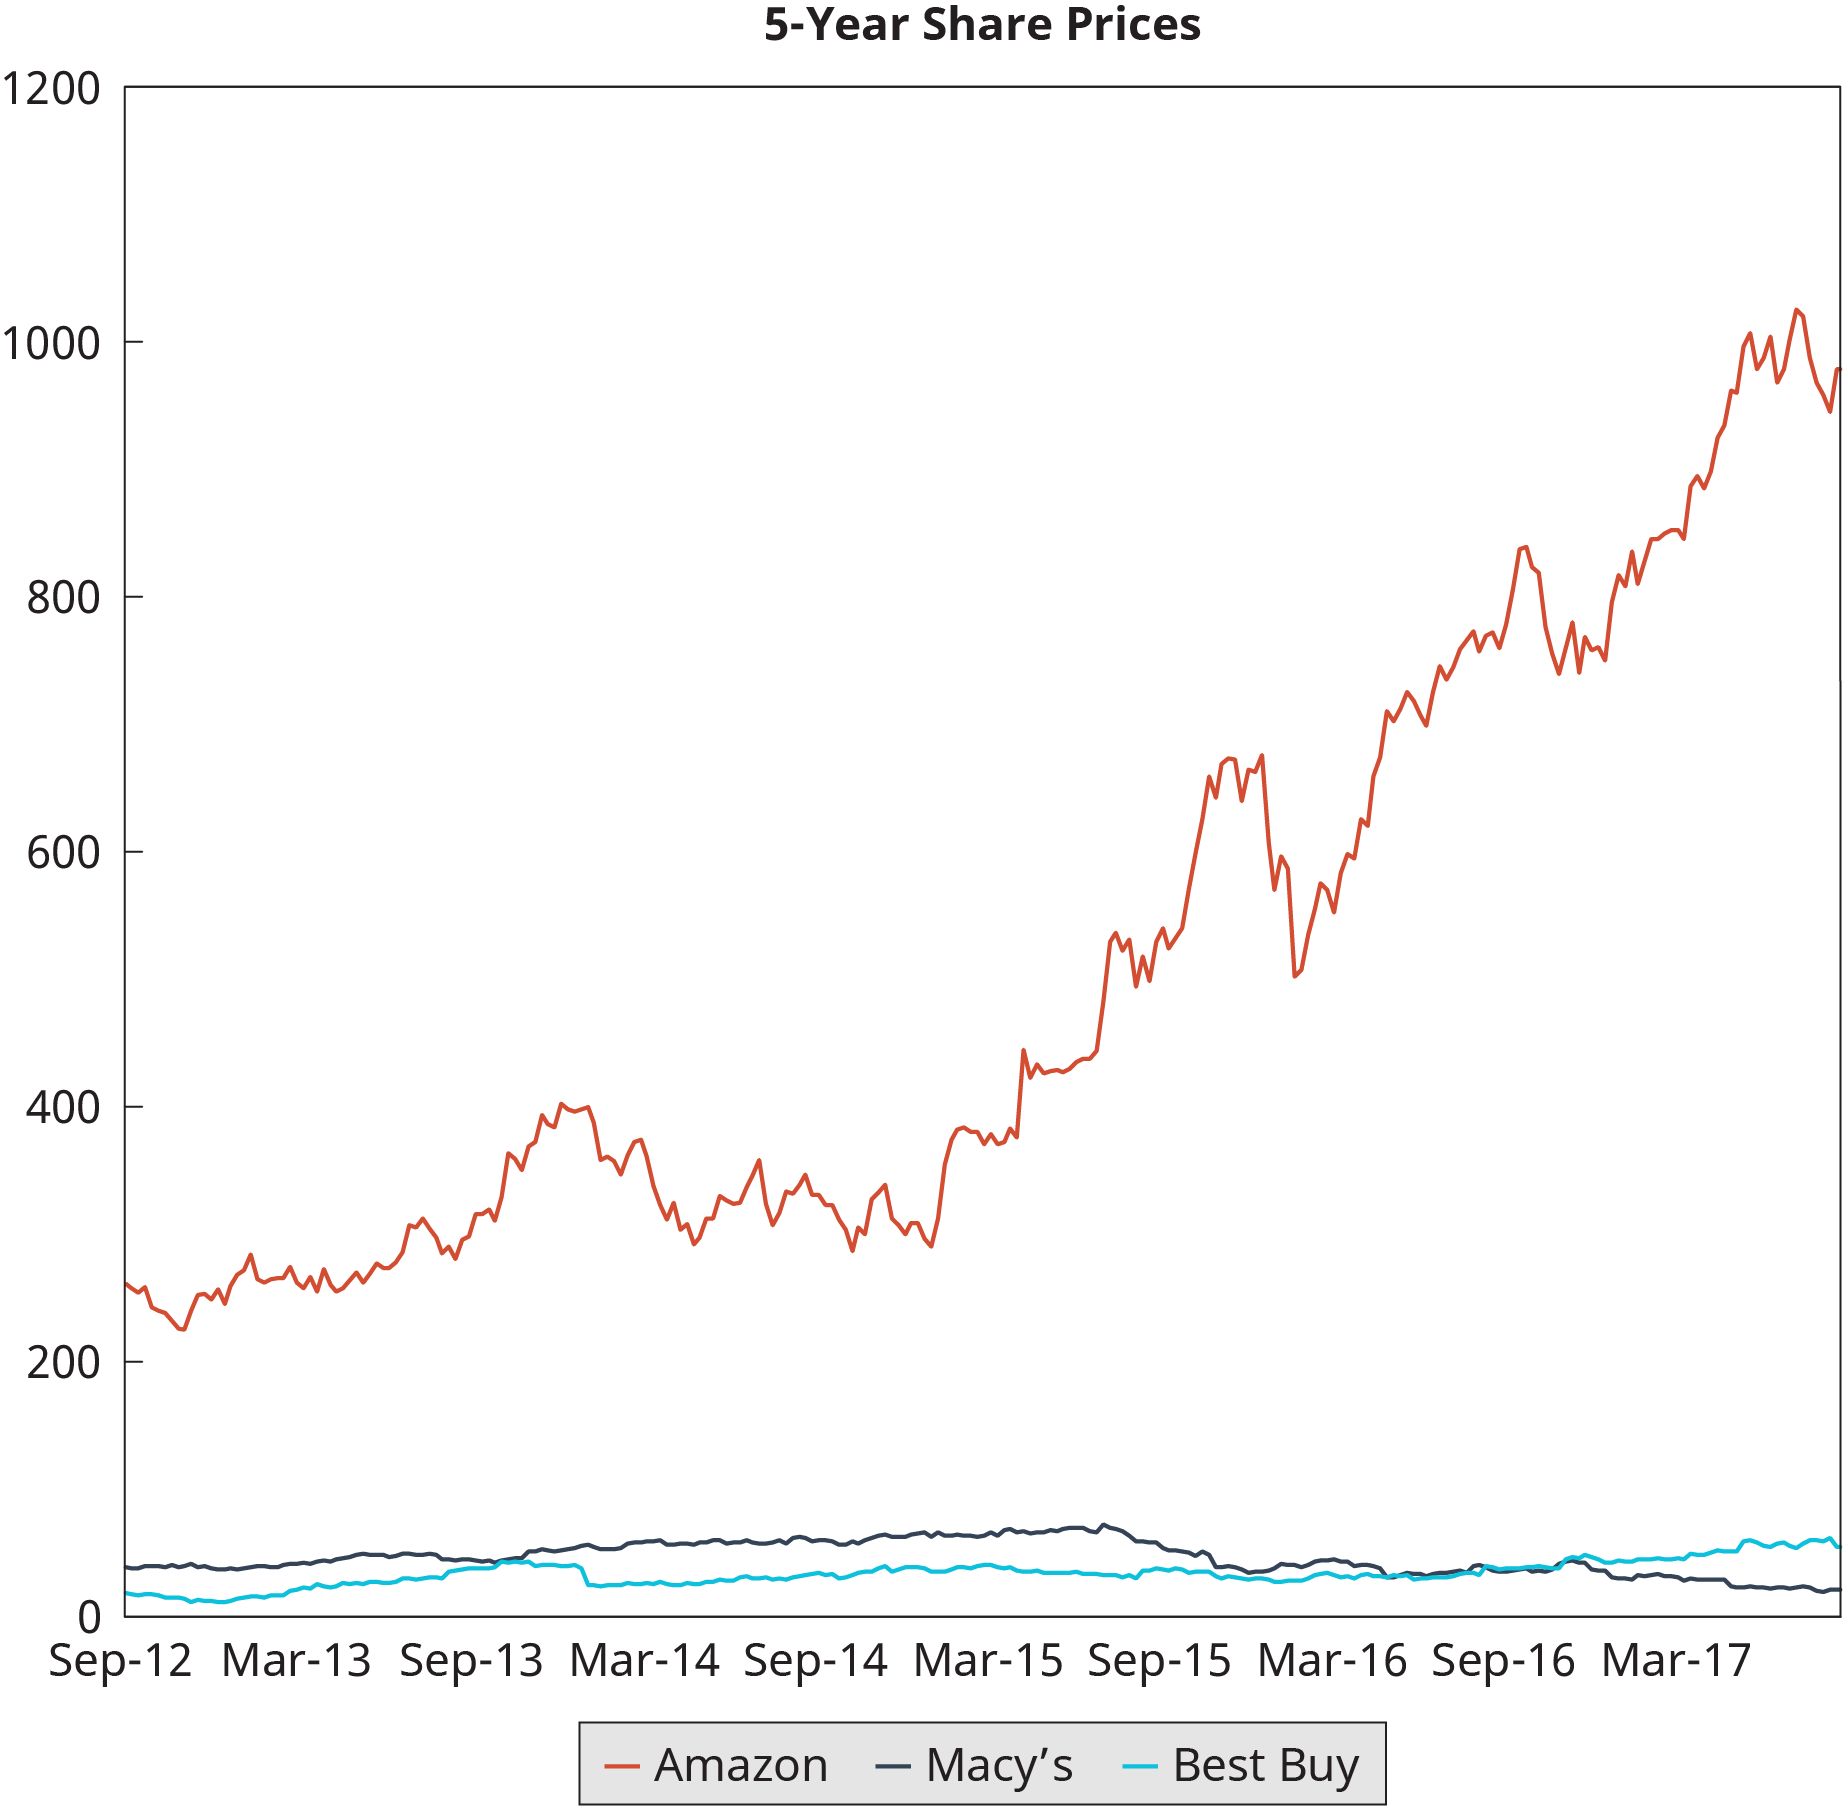 A multiple line graph plots the share price comparison of Amazon, Macy's, and Best Buy.